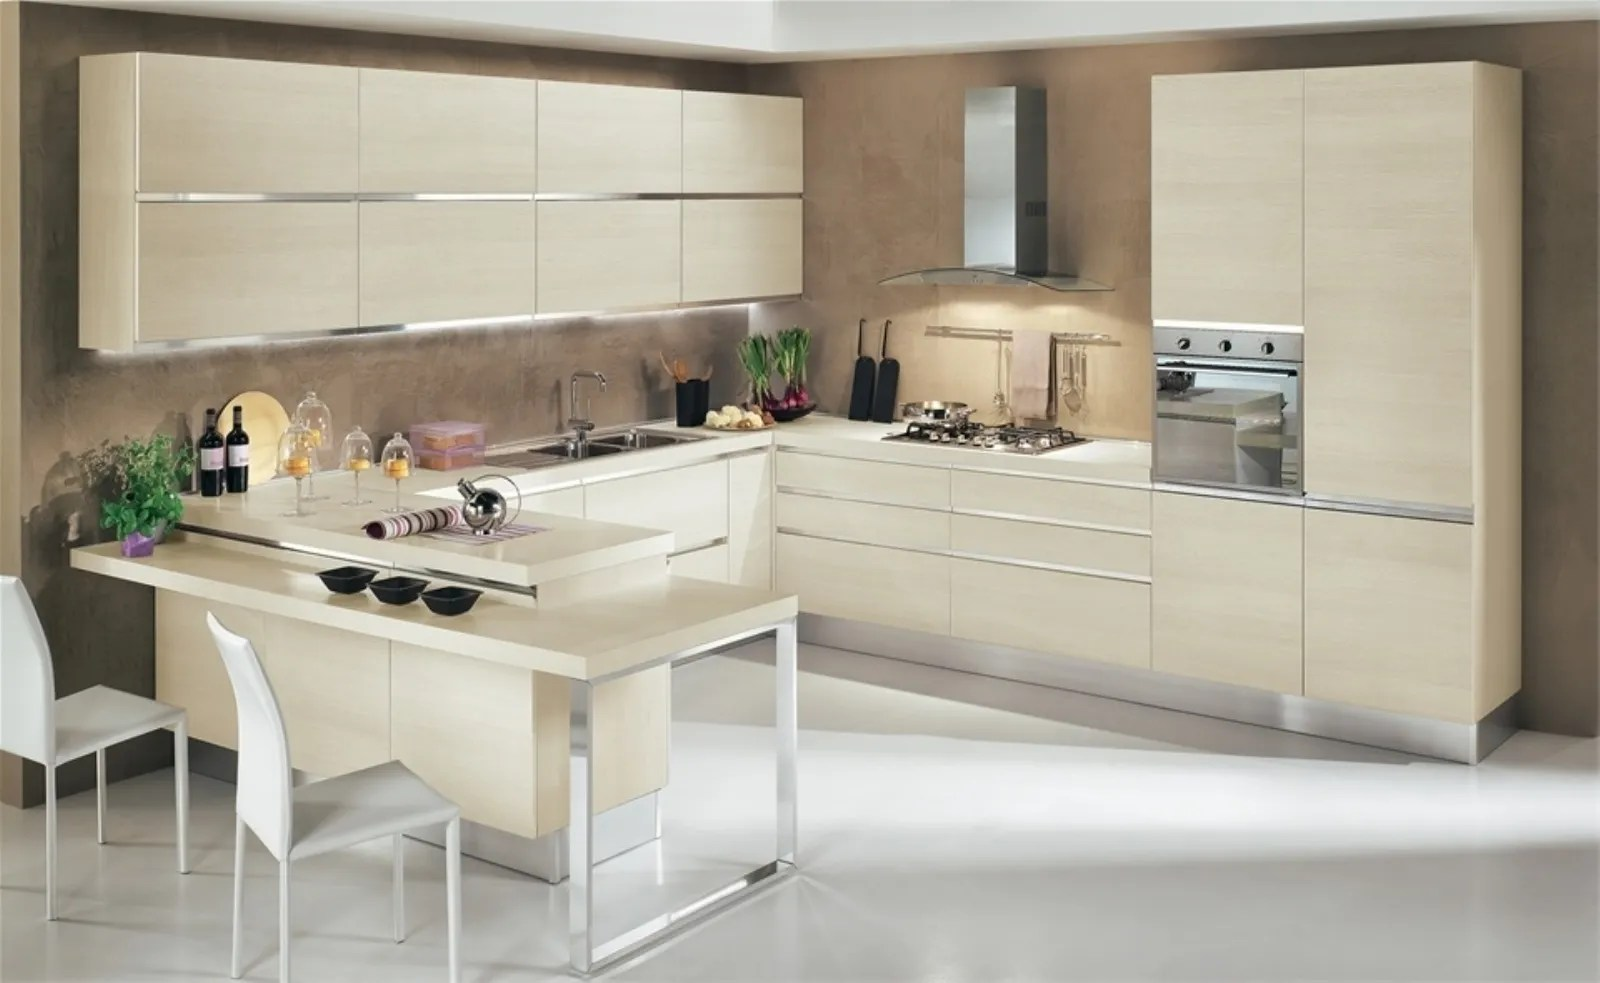 Cucine Mondo Convenienza Olmo Top Cucine Mondo Convenienza Excellent Mondo Convenienza With Top